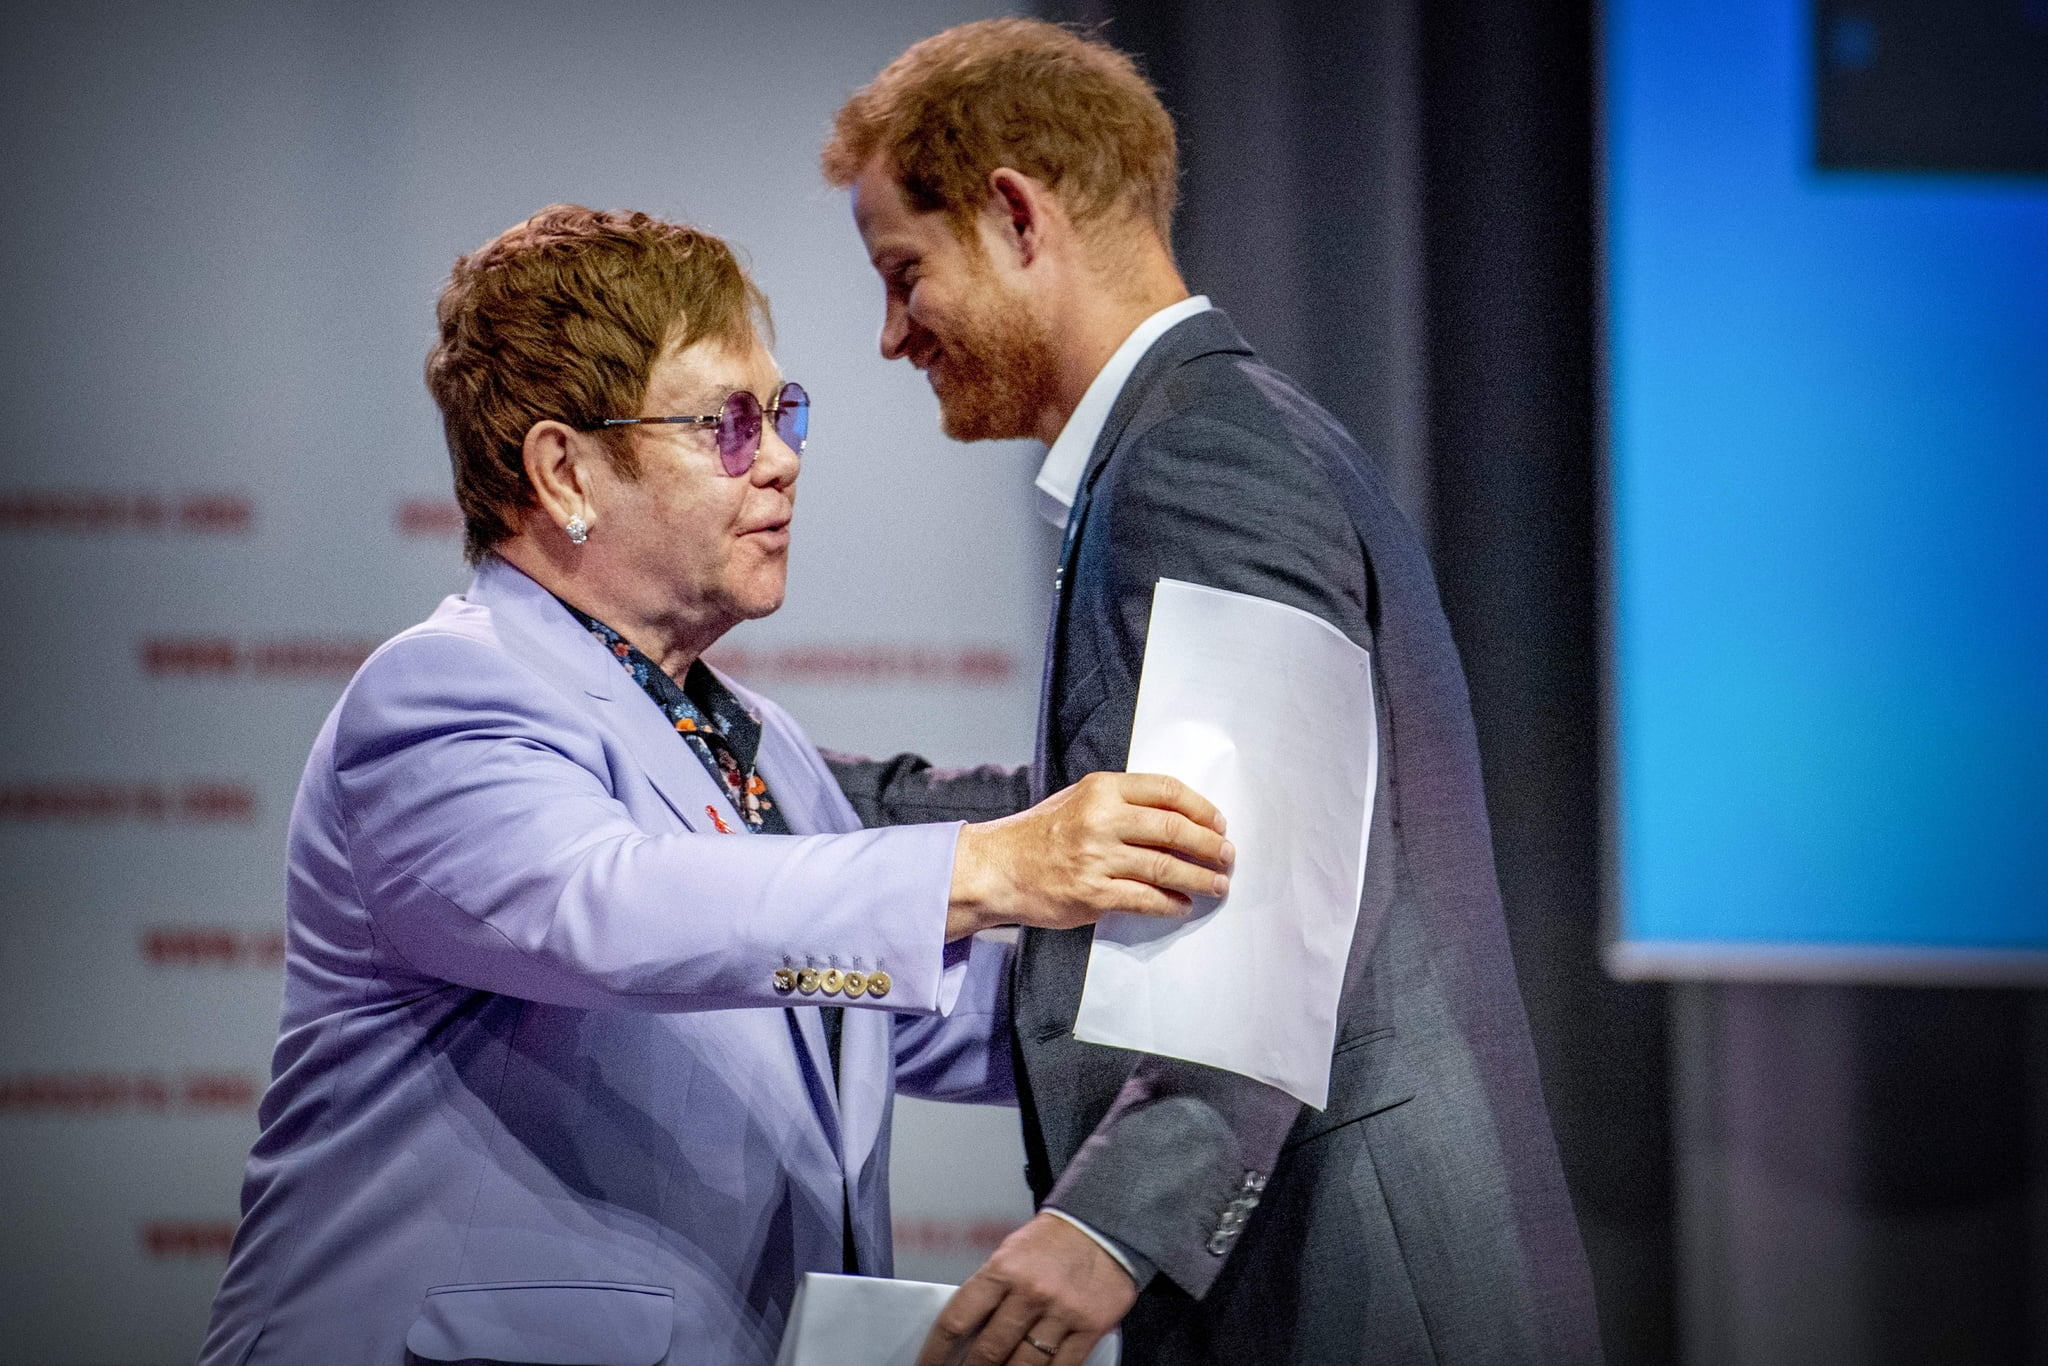 British Prince Harry (L) and sir Elton John attend a session about the Elton John Aids Fund on the second day of the Aids2018 conference, in Amsterdam on July 24, 2018. - From 23 to July 27, thousands of delegates -- researchers, campaigners, activists and people living with the killer virus -- attend the 22nd International AIDS Conference amid warnings that